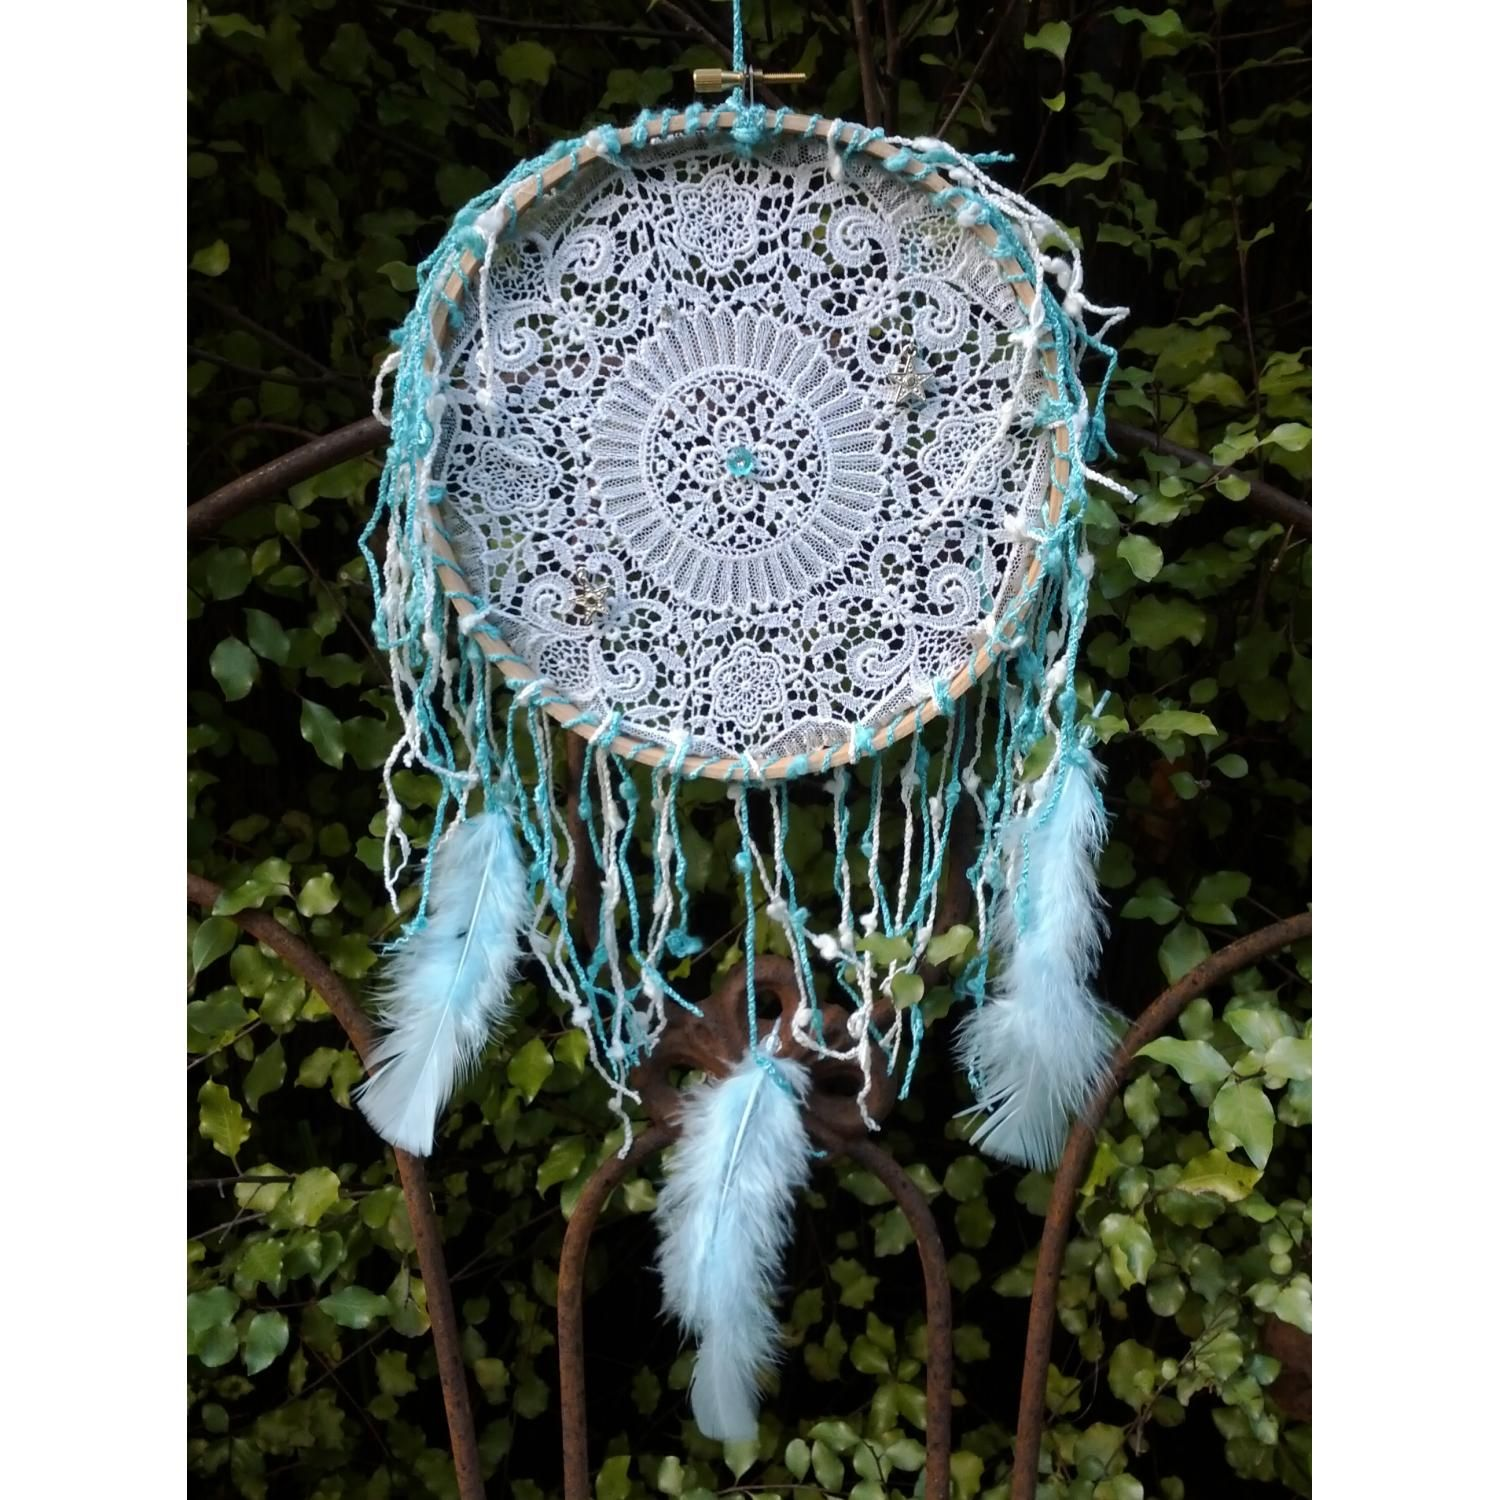 Dream Catcher Supplies Australia Vintage Doily Dreamcatcher Doilies Pinterest Dream catchers 11